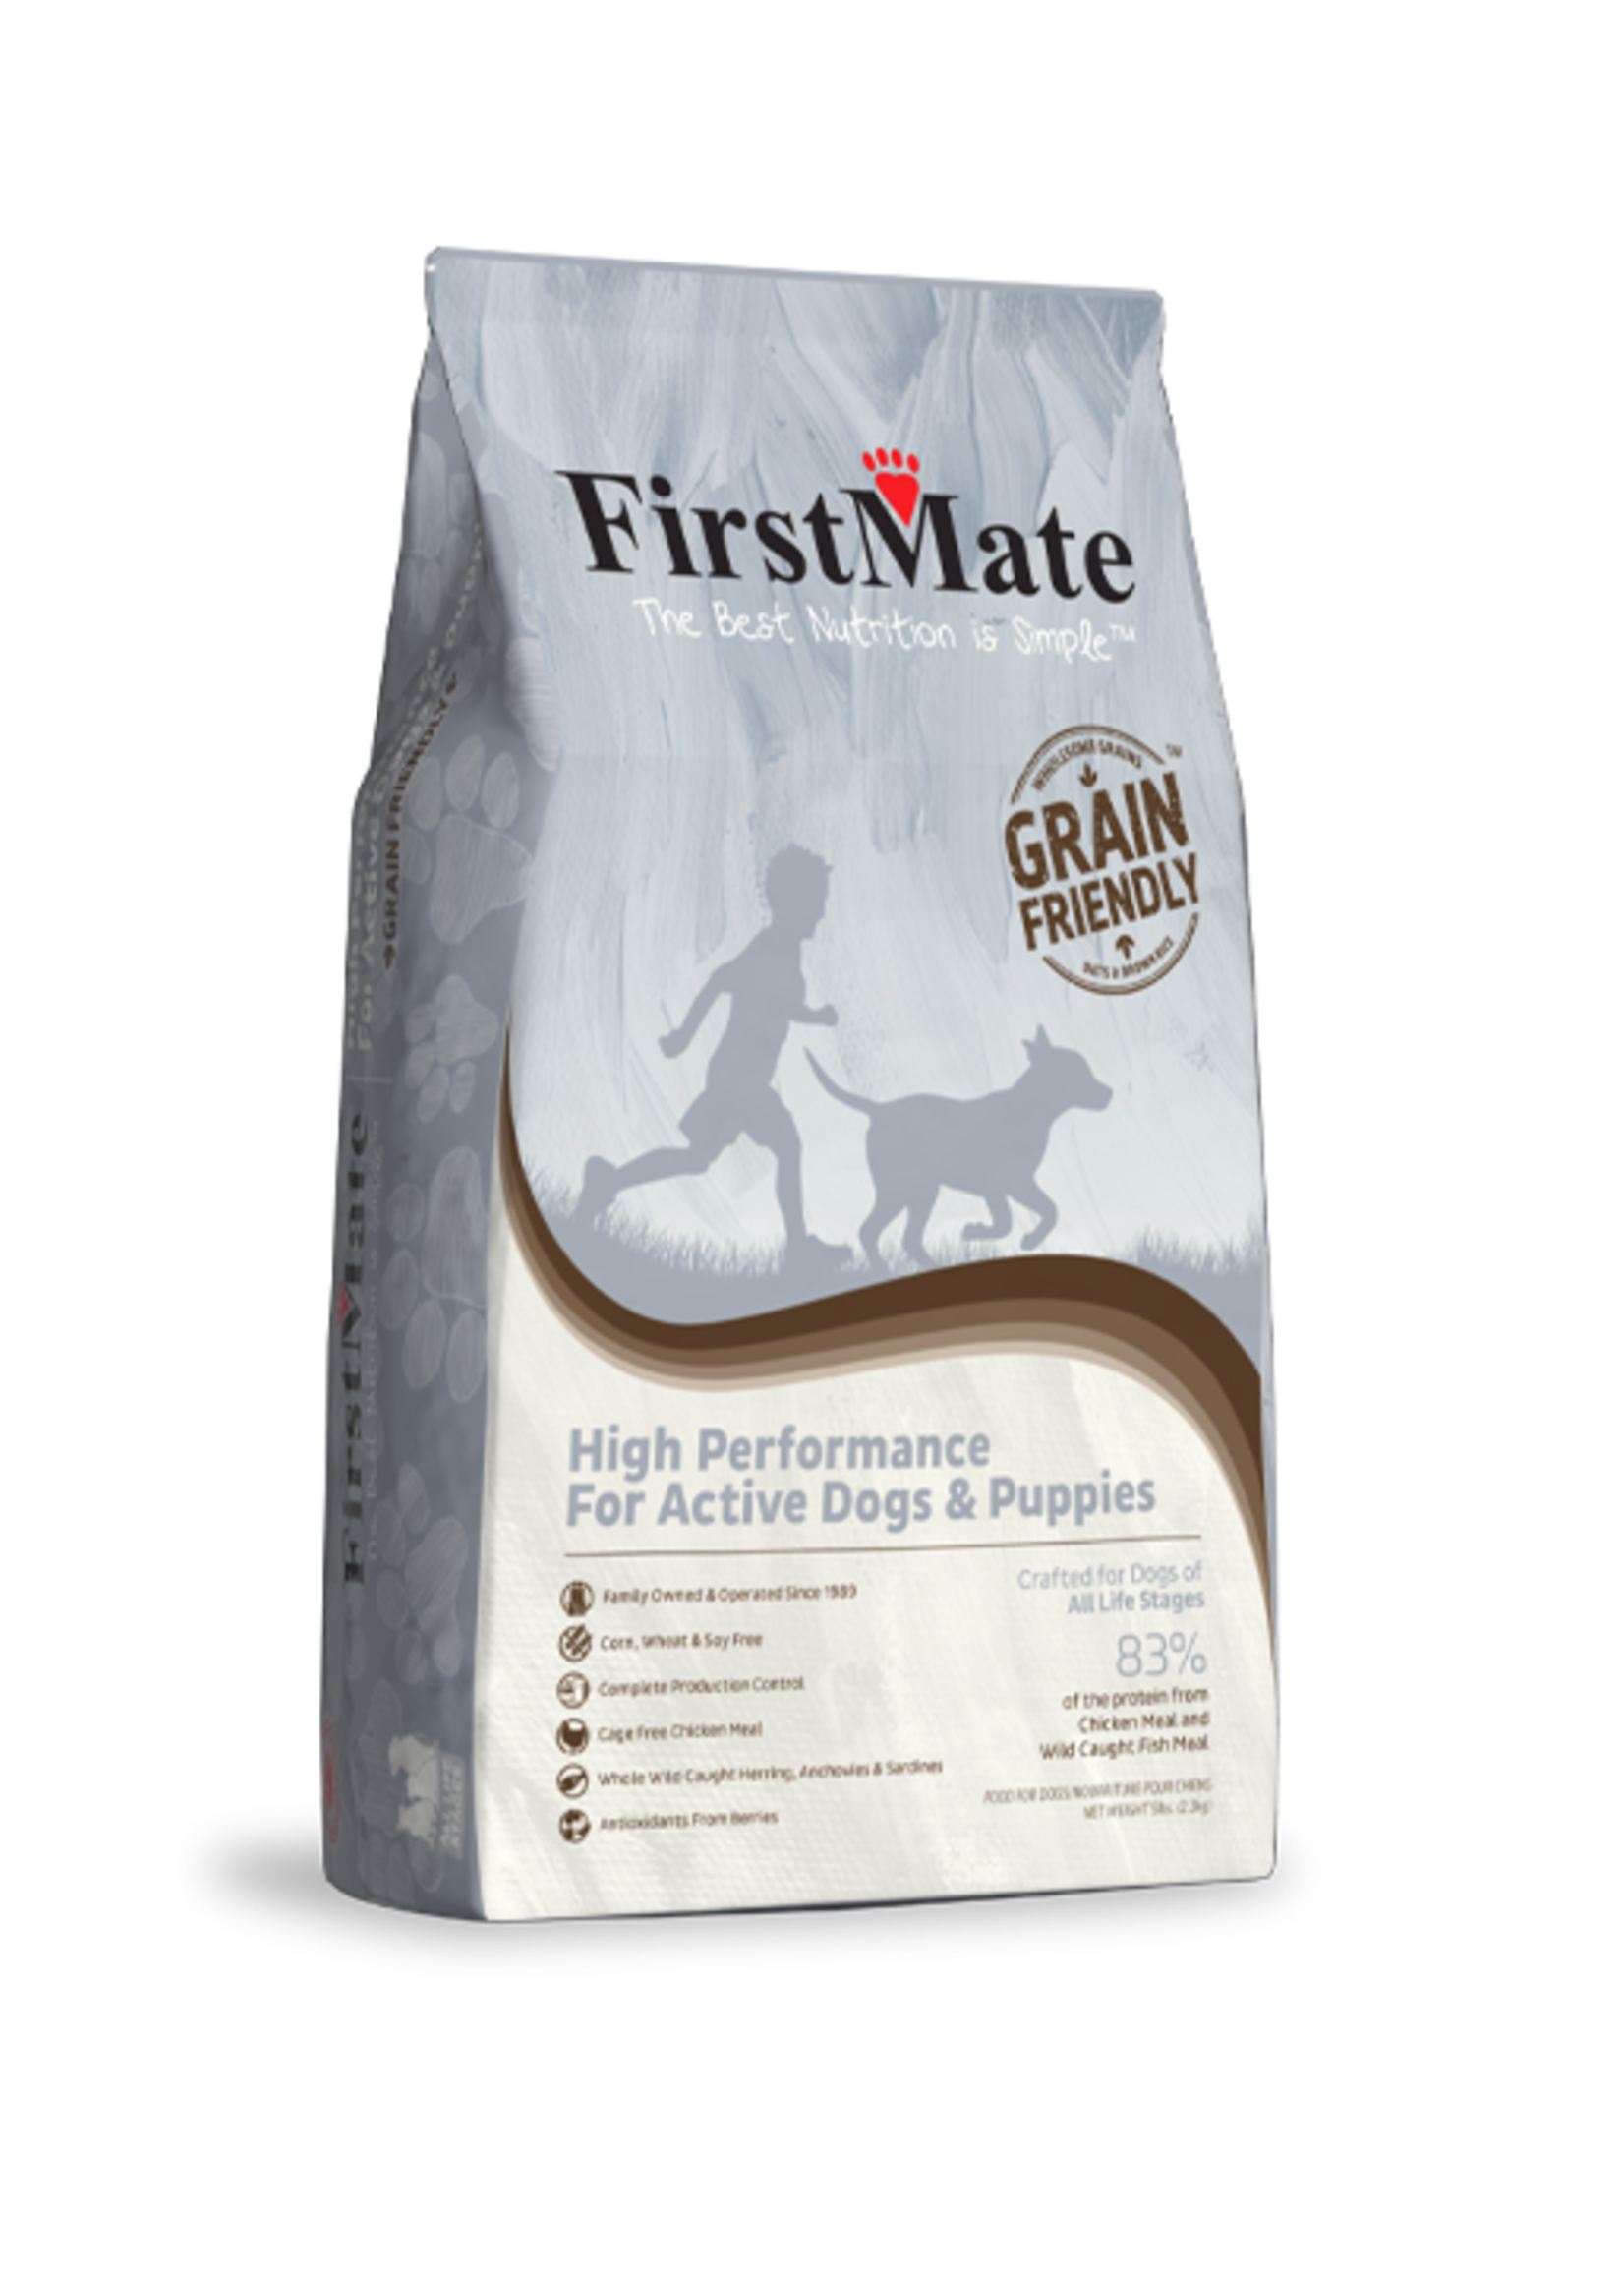 FirstMate FirstMate High Performance for Active Dogs & Puppies 5lbs